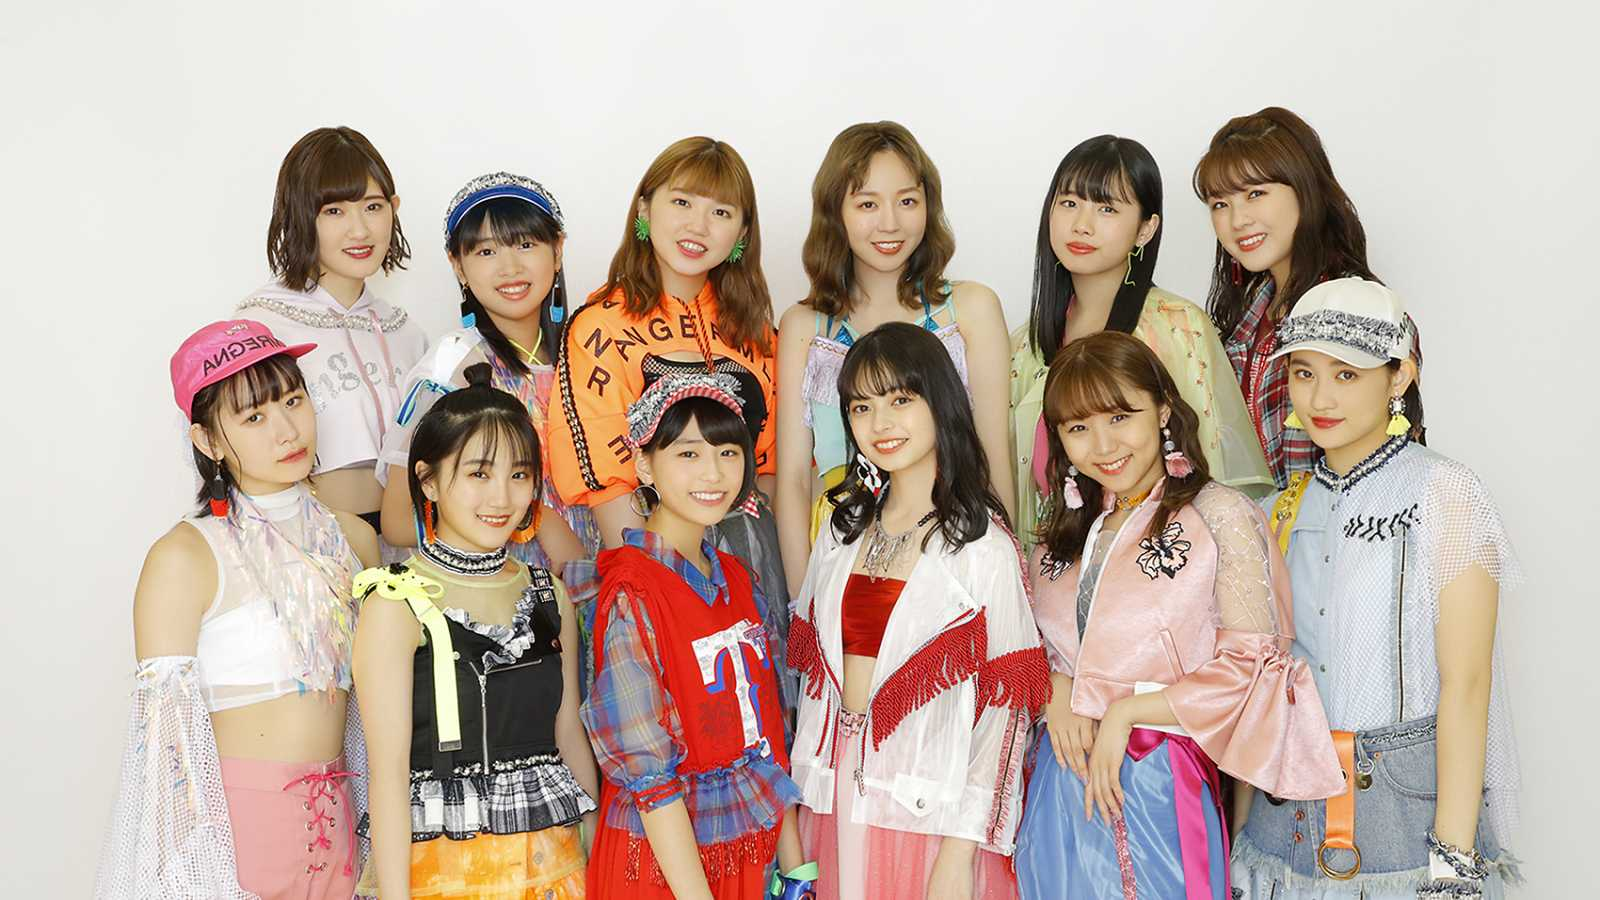 Interview with ANGERME © DC FACTORY. All rights reserved.